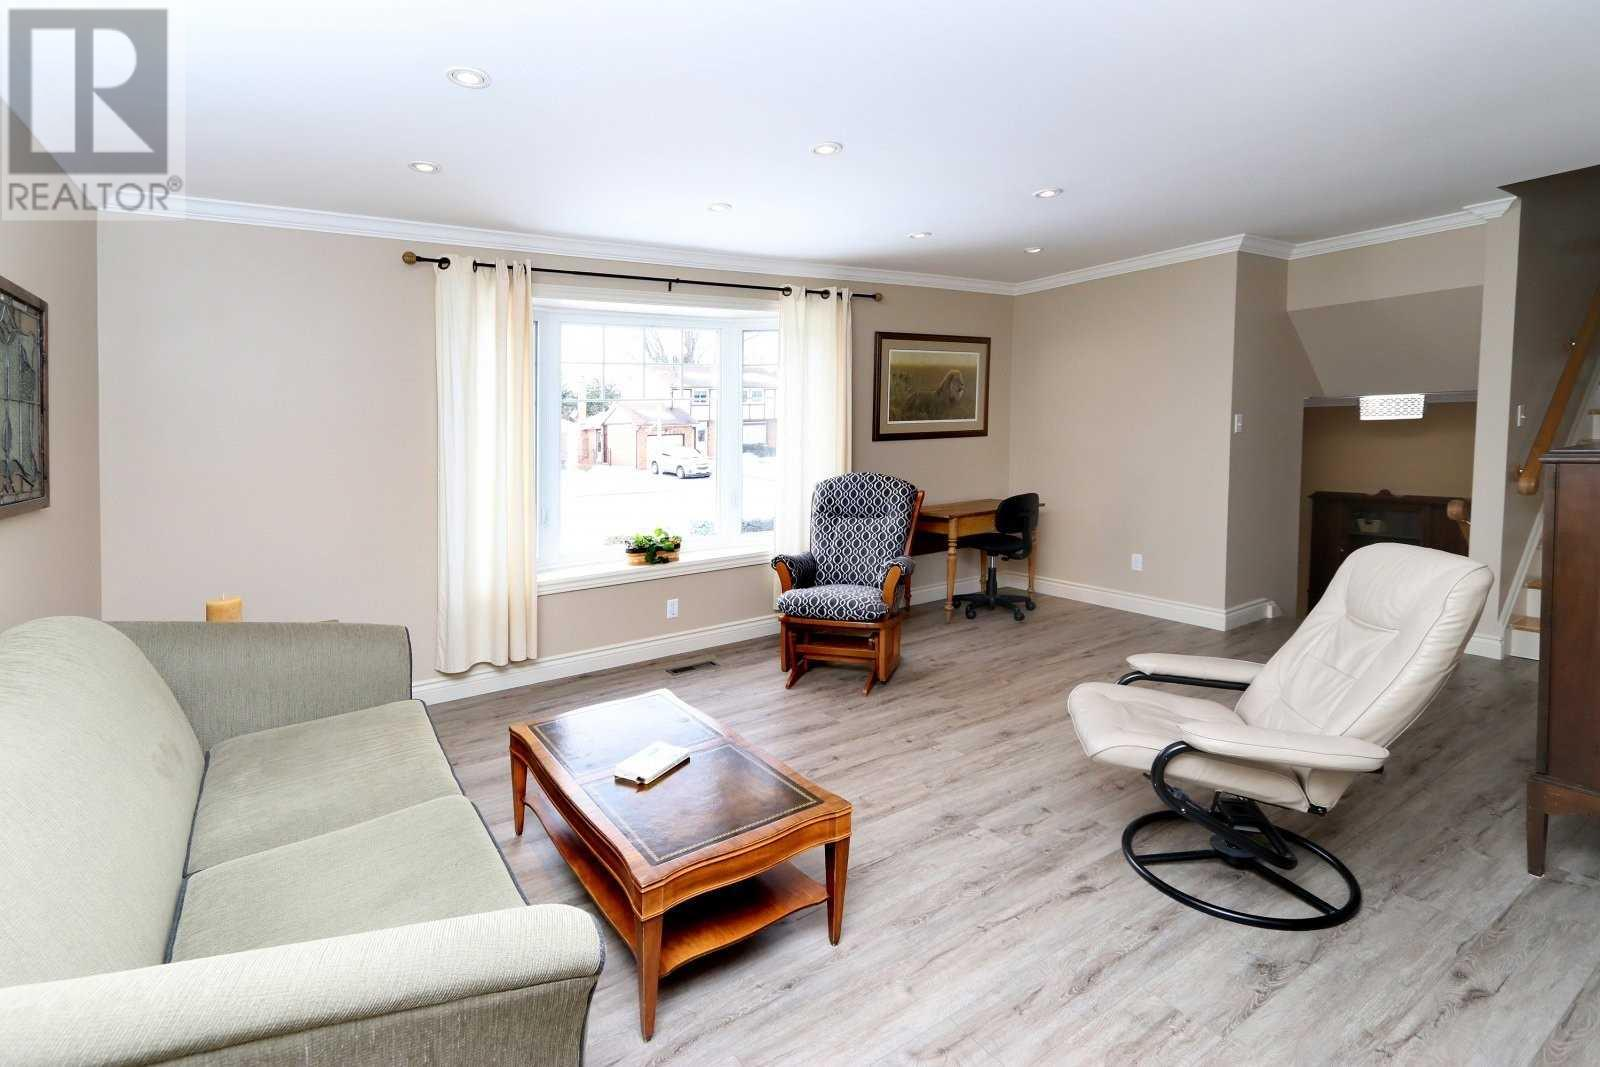 2524 Windjammer Rd, Mississauga, Ontario  L5L 1H9 - Photo 6 - W4675885